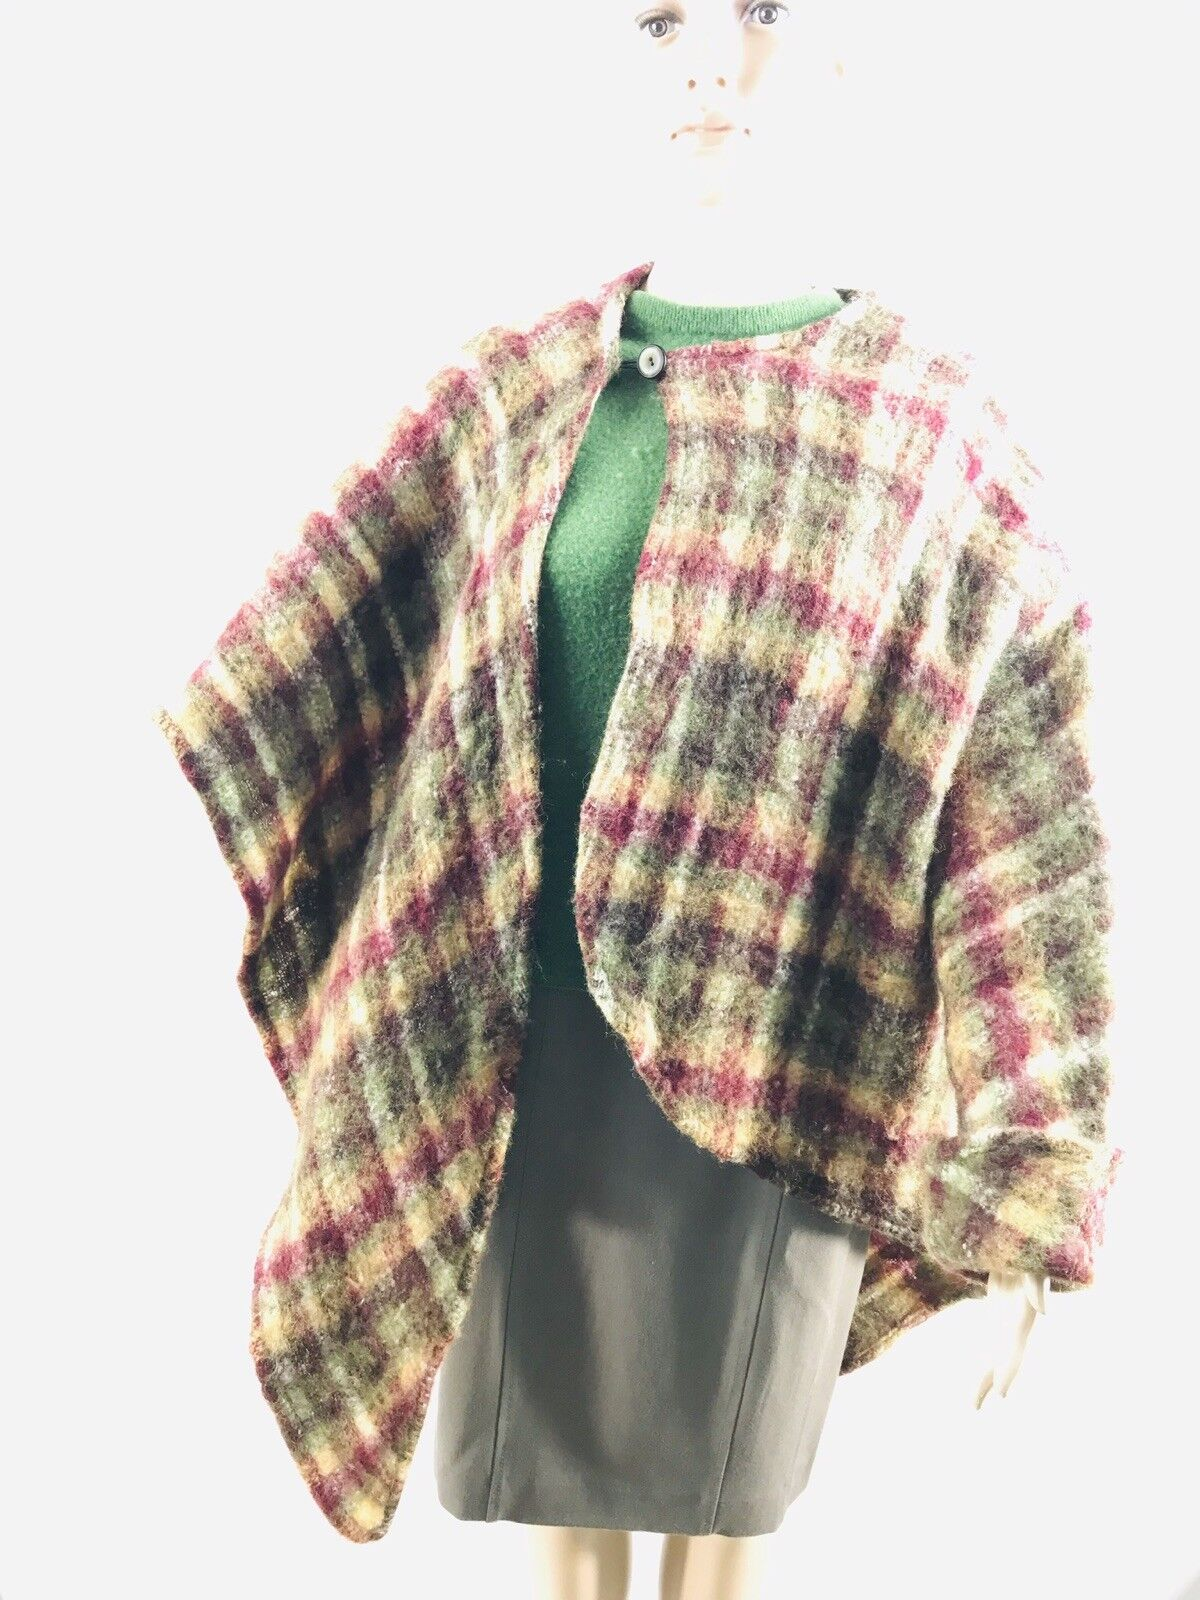 Women's Handmade Plaid Single Sleeve Cape Poncho Yellow Green Maroon OS UNIQUE